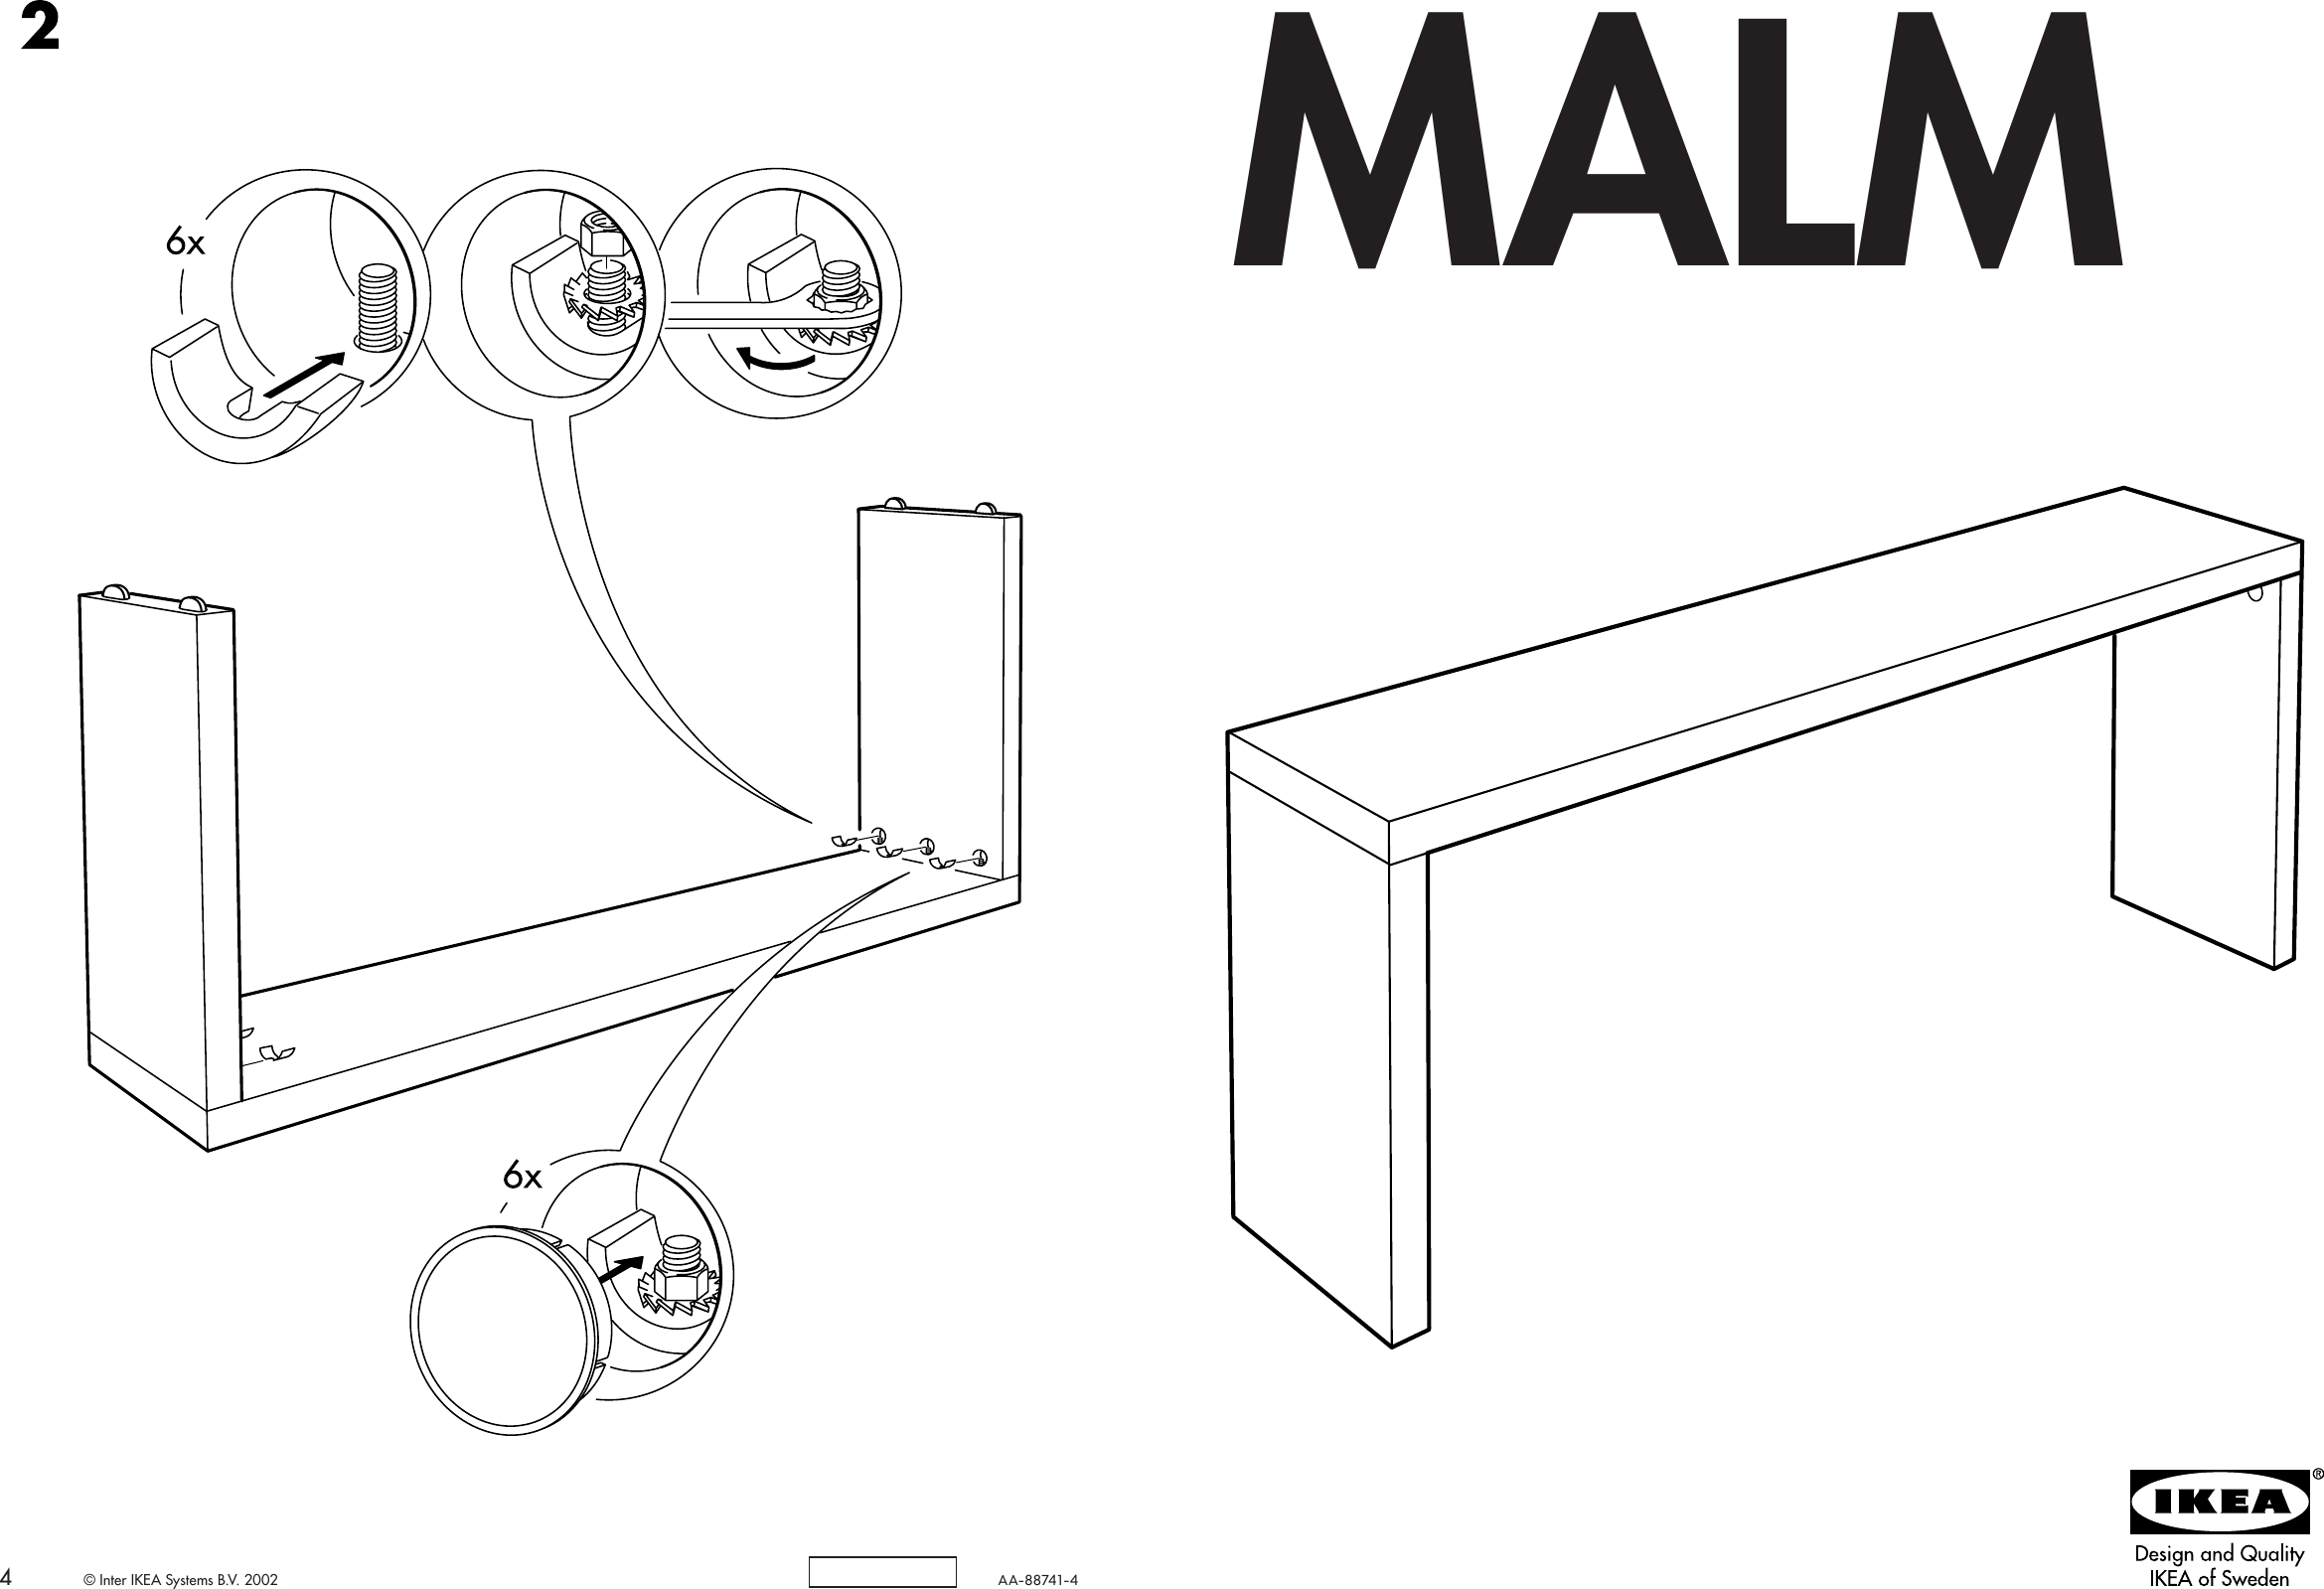 Ikea Malm Occasional Table 75 1 4x28 7 8 Assembly Instruction